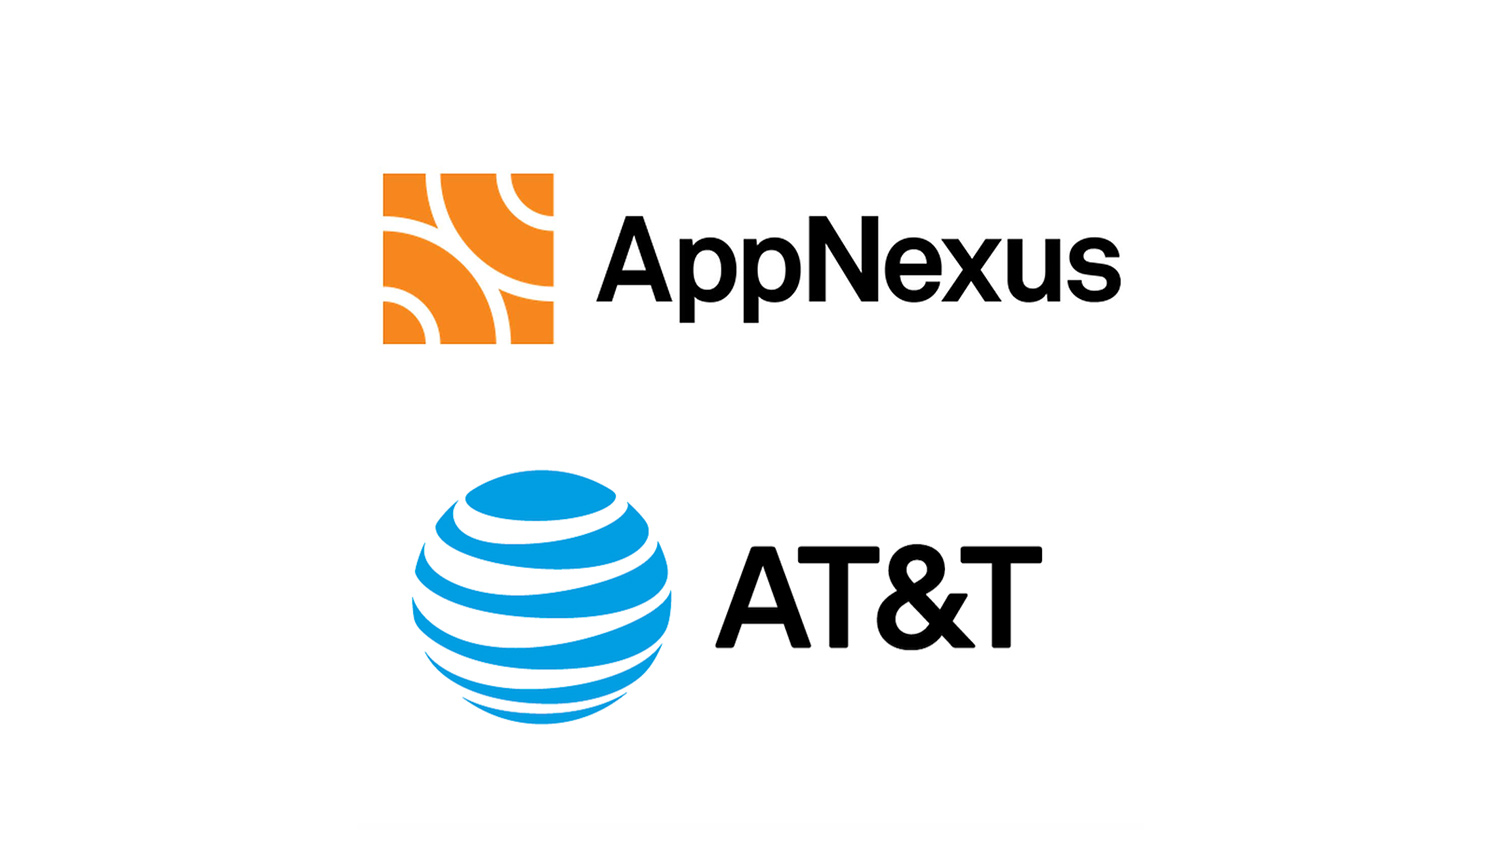 AppNexus and AT&T